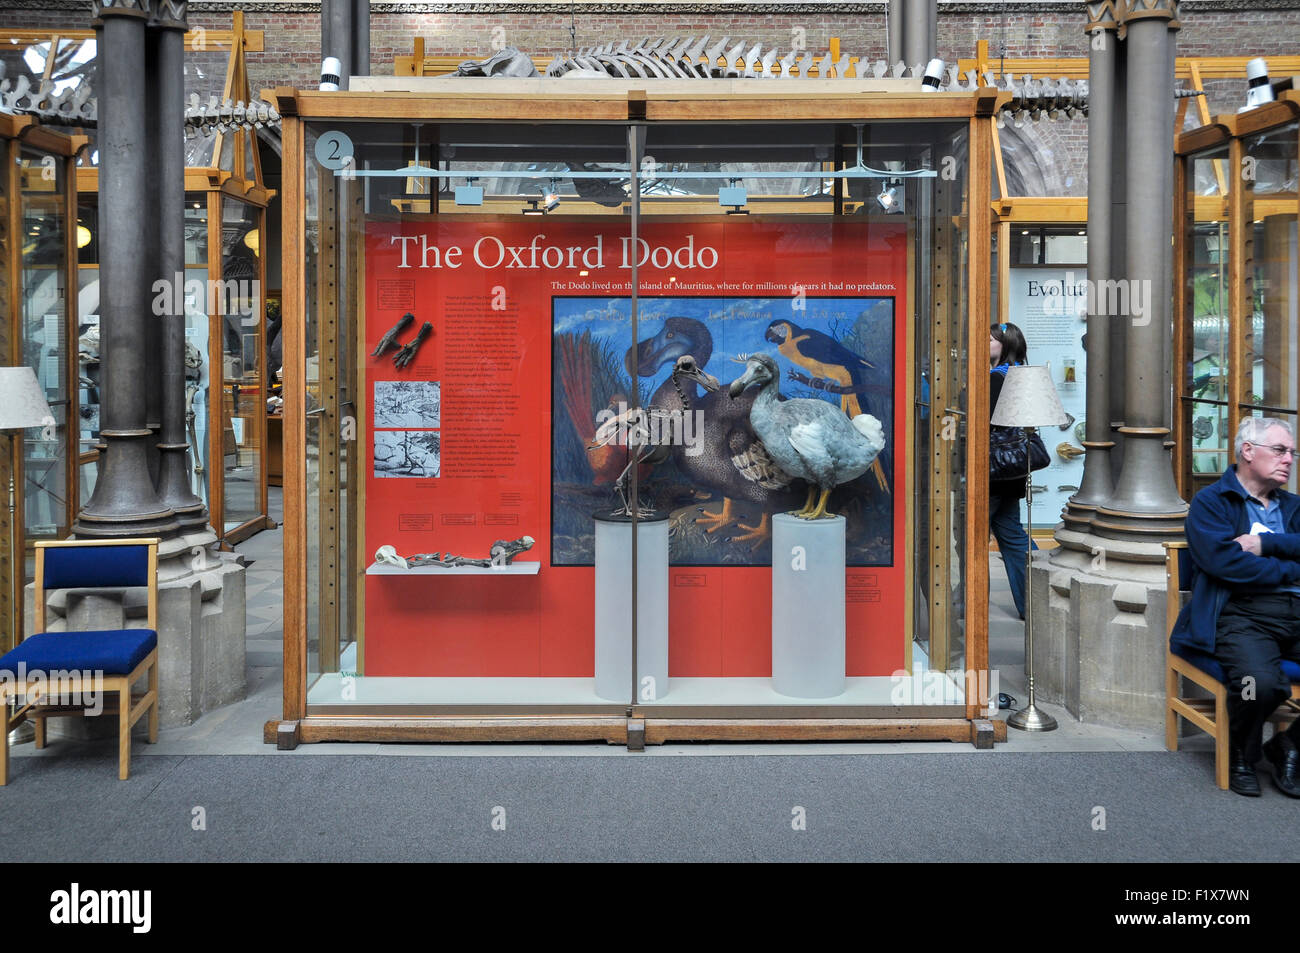 The Oxford Dodo at the Museum if Natural History, Oxford, United Kingdom - Stock Image